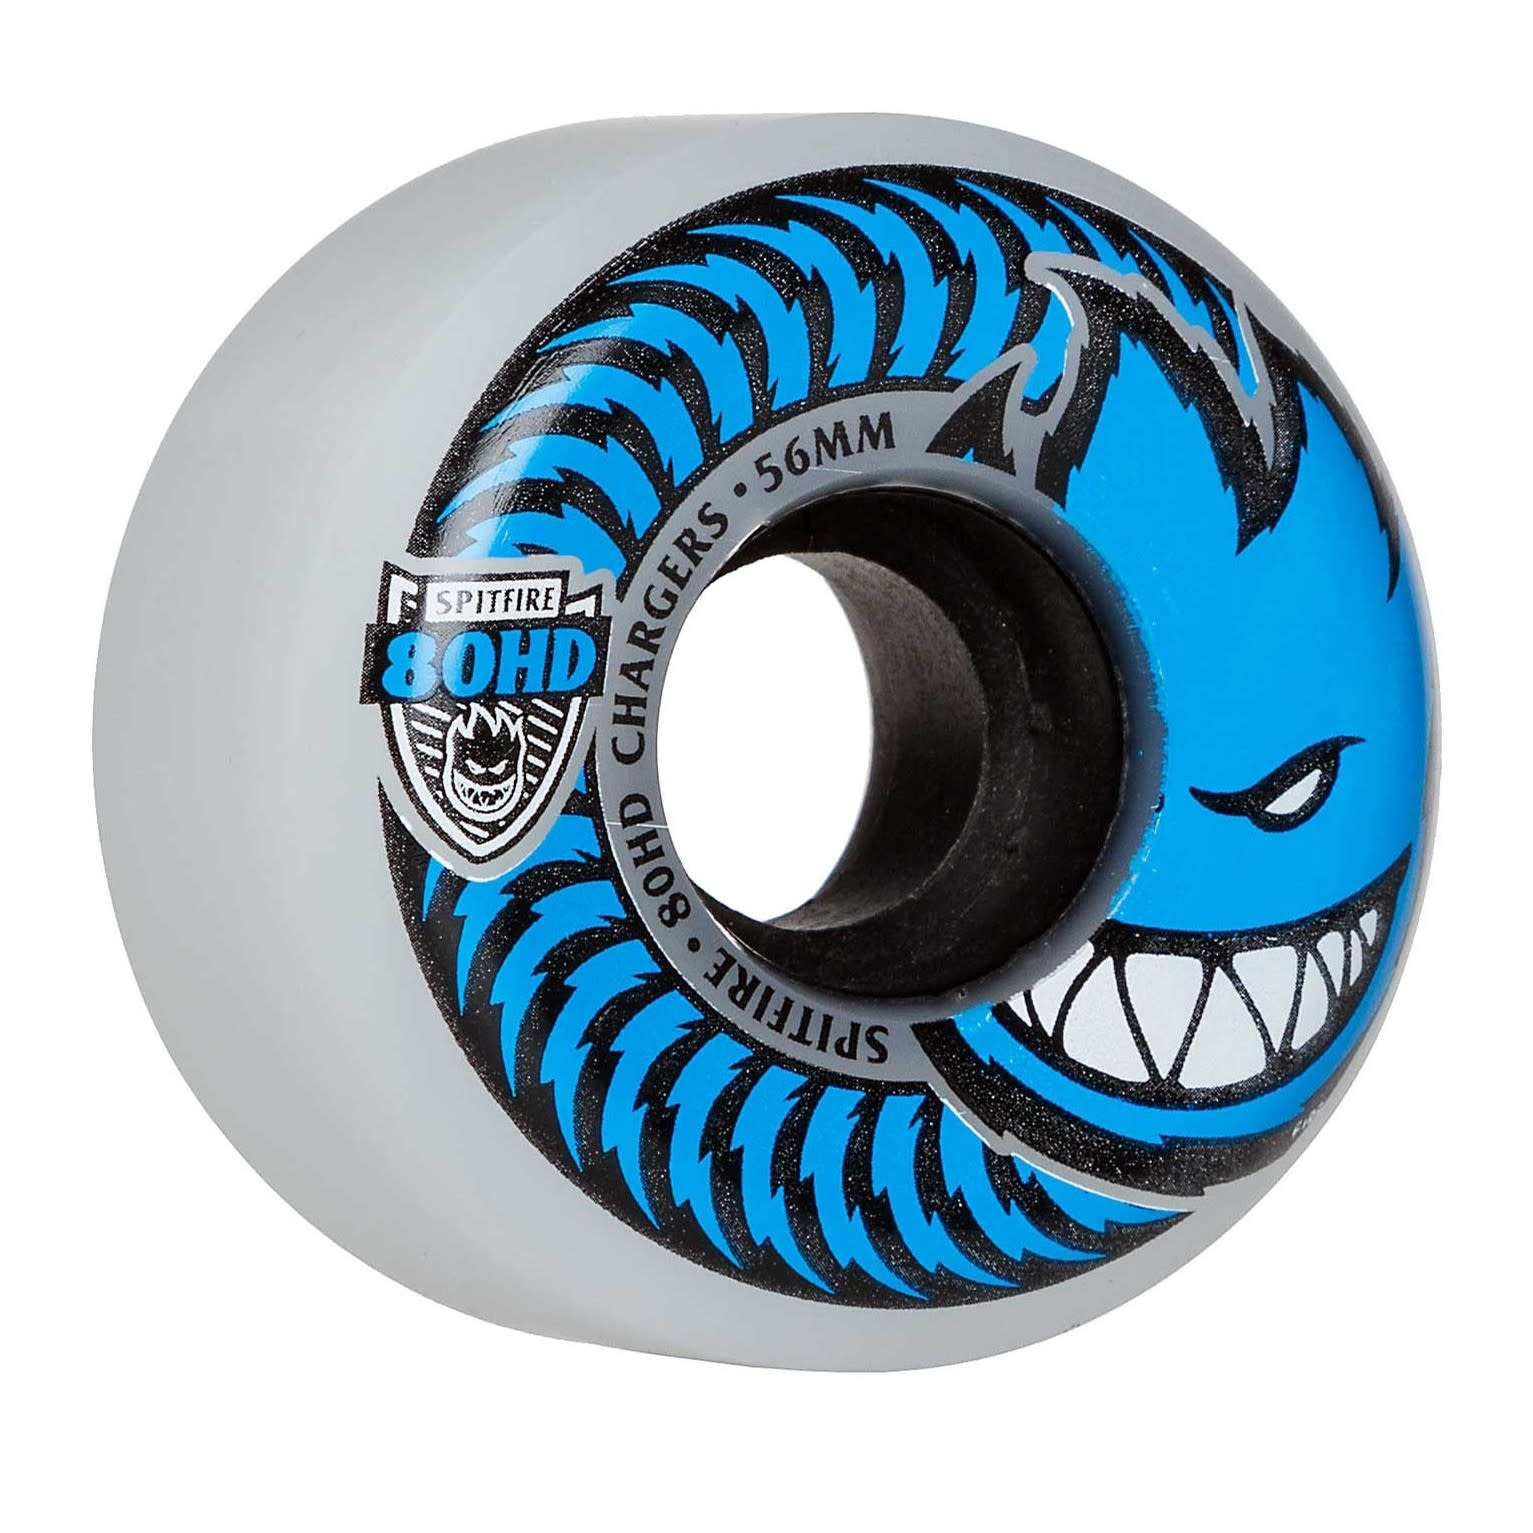 Spitfire Wheels Spitfire 80hd Charger Conical Clear 56mm